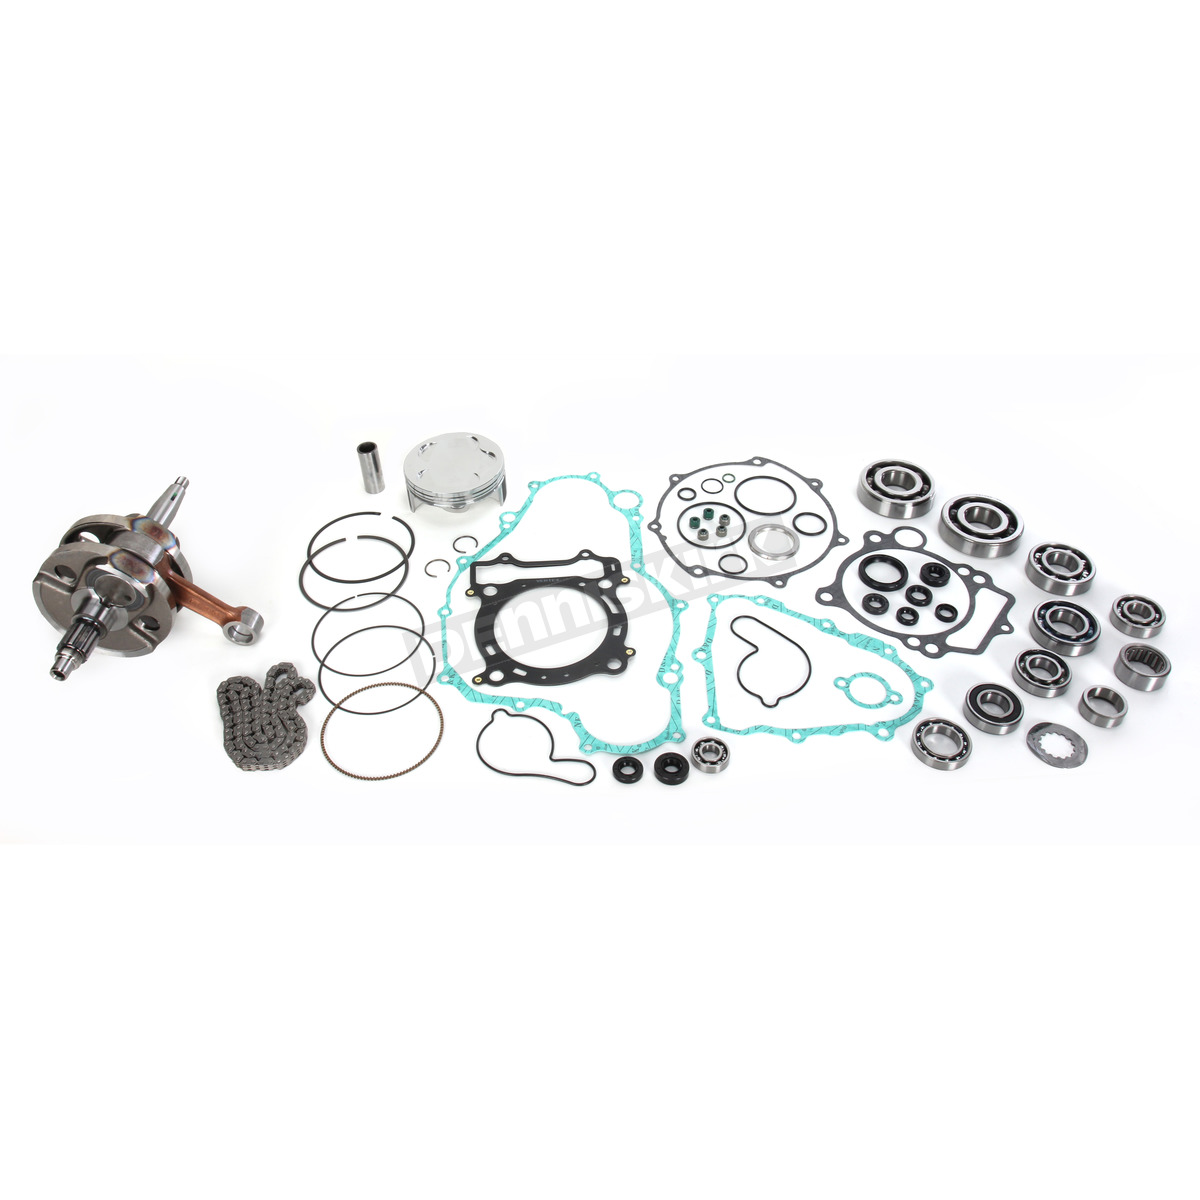 Wrench Rabbit Complete Engine Rebuild Kit 95mm Bore